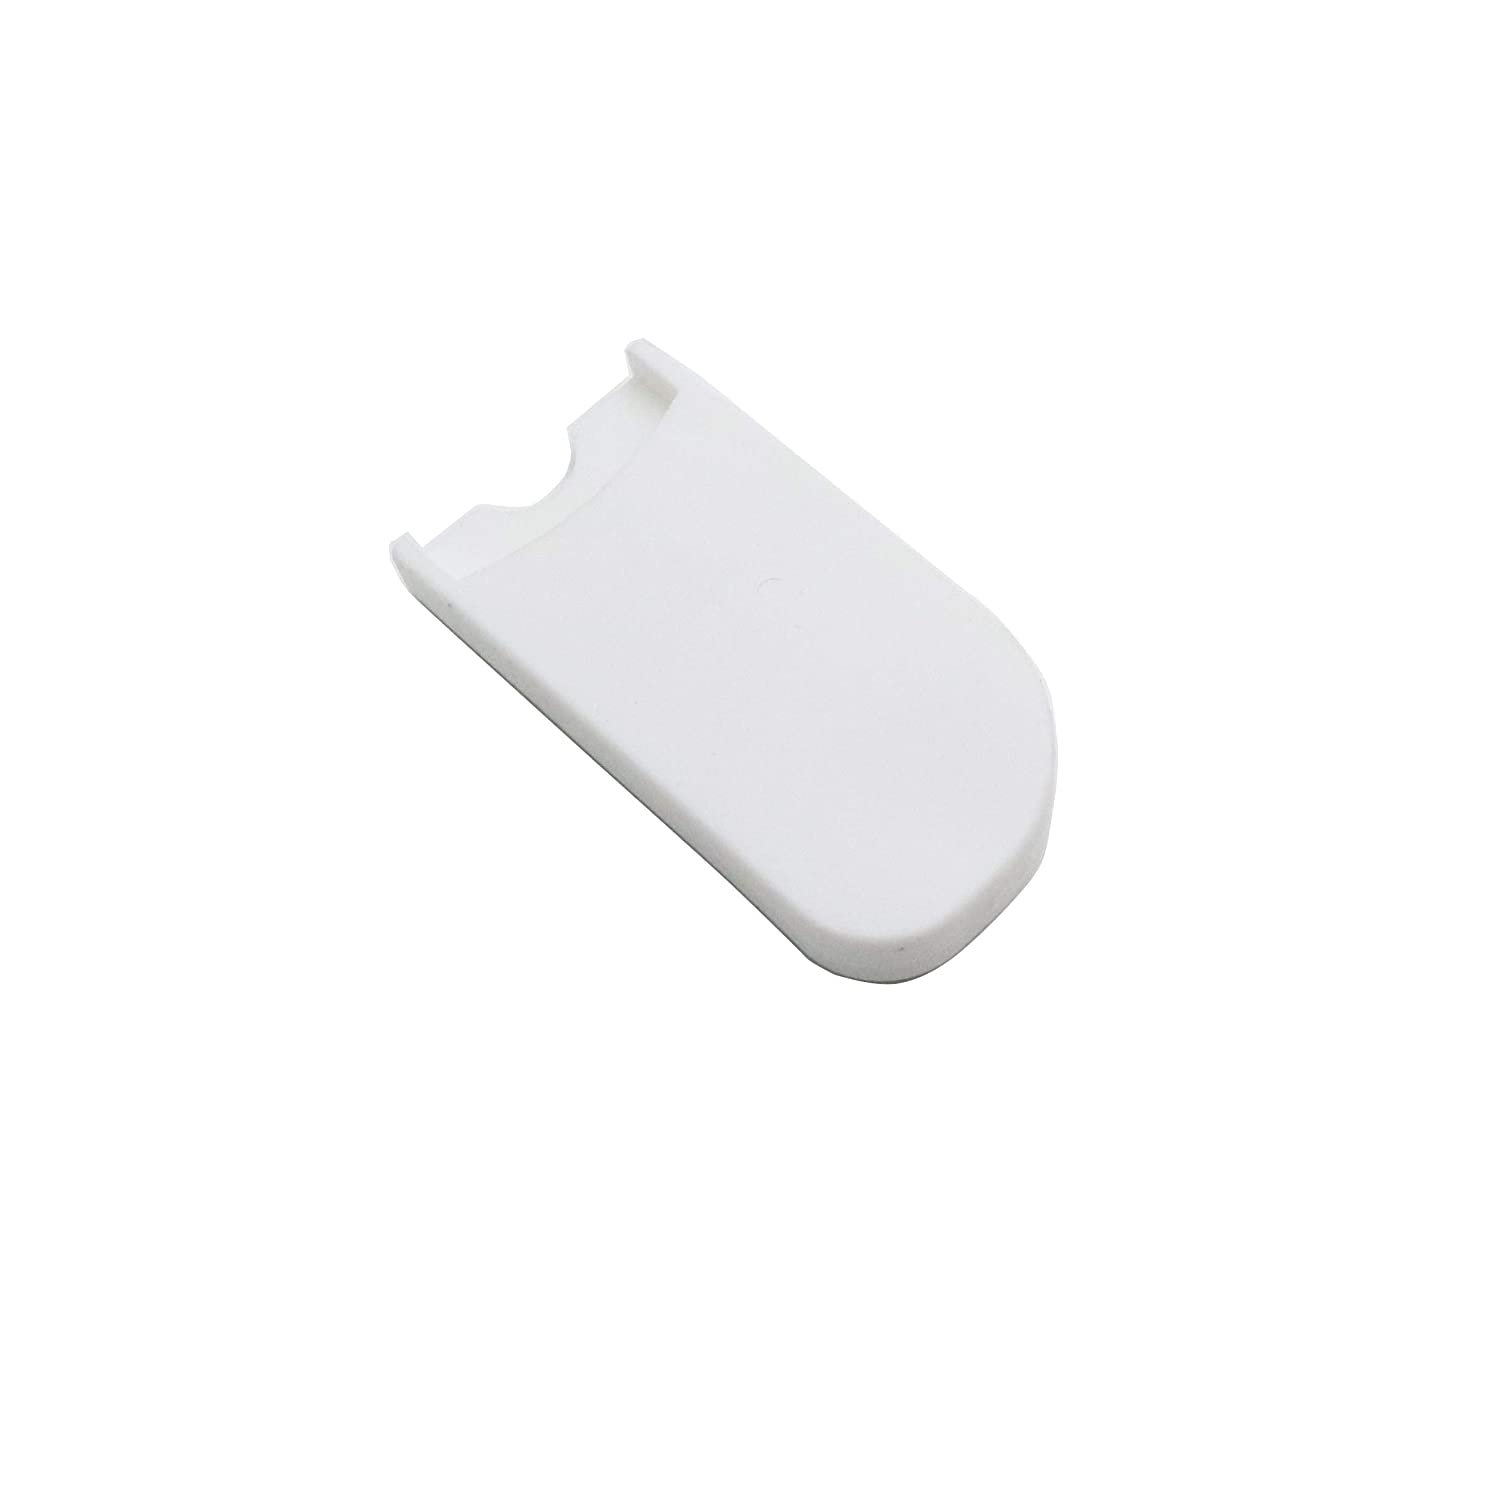 White Timiy 1 Set Saxophone Palm Key Risers and Thumb Rest Cushions for Sax Wind Instruments